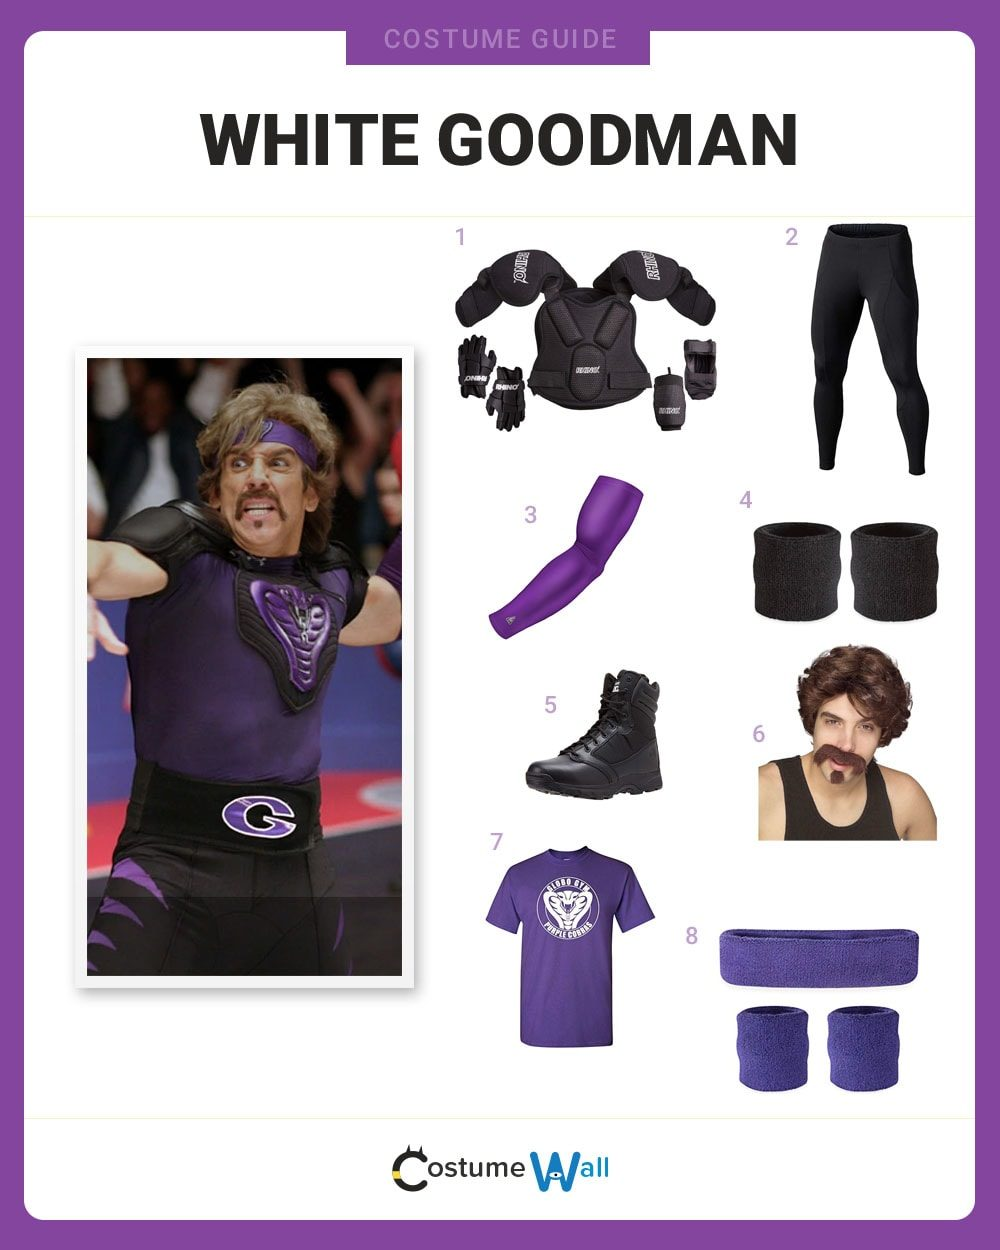 White Goodman Costume Guide